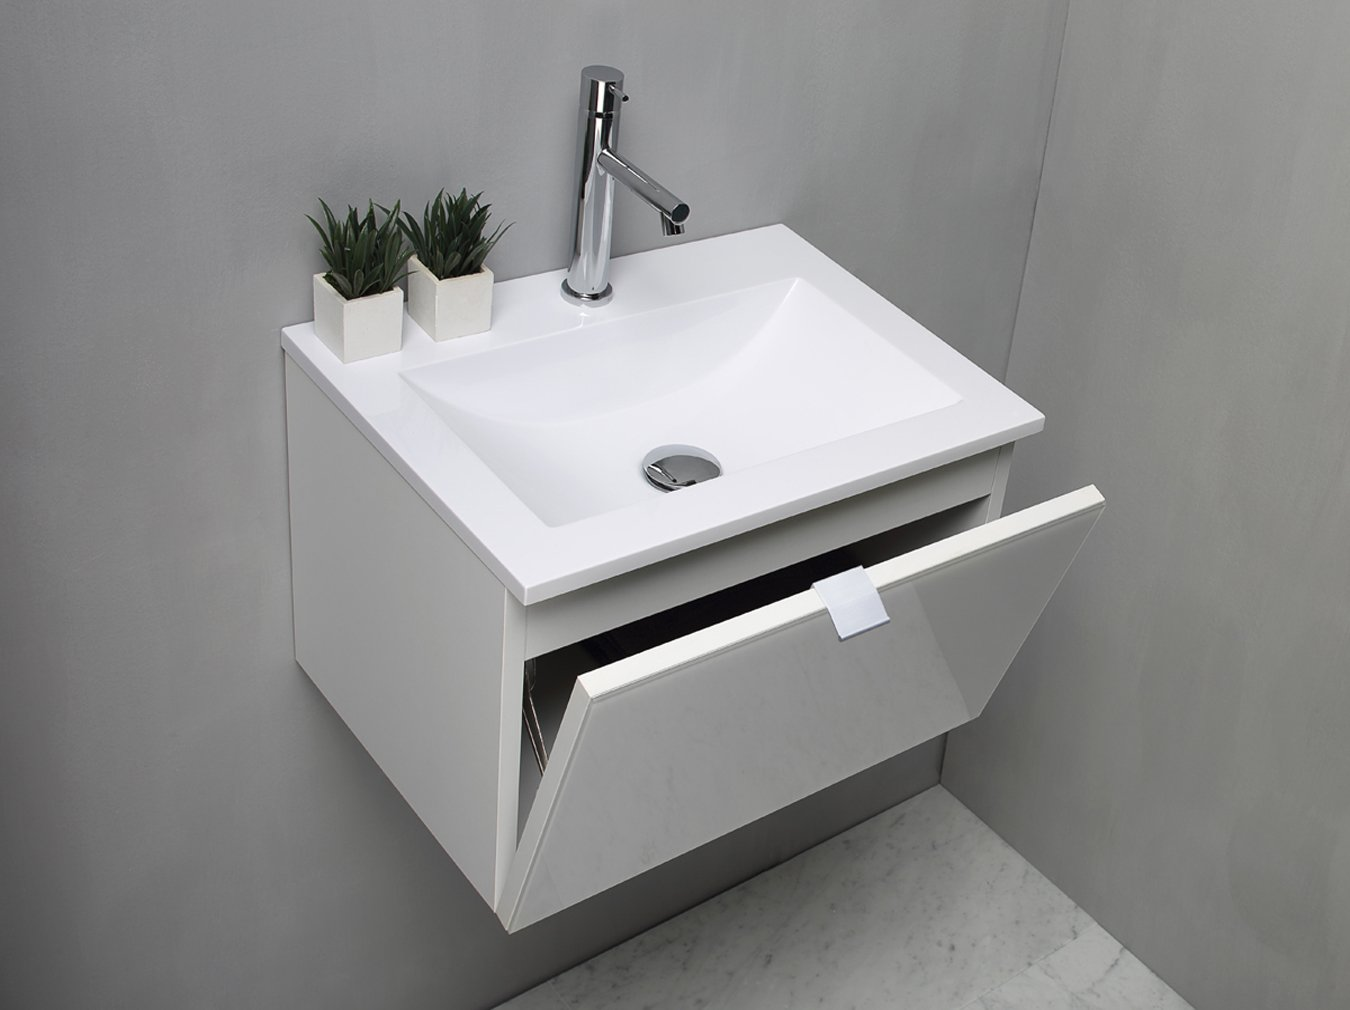 Awesome lavandino bagno sospeso ideas for Mobile bagno lavabo